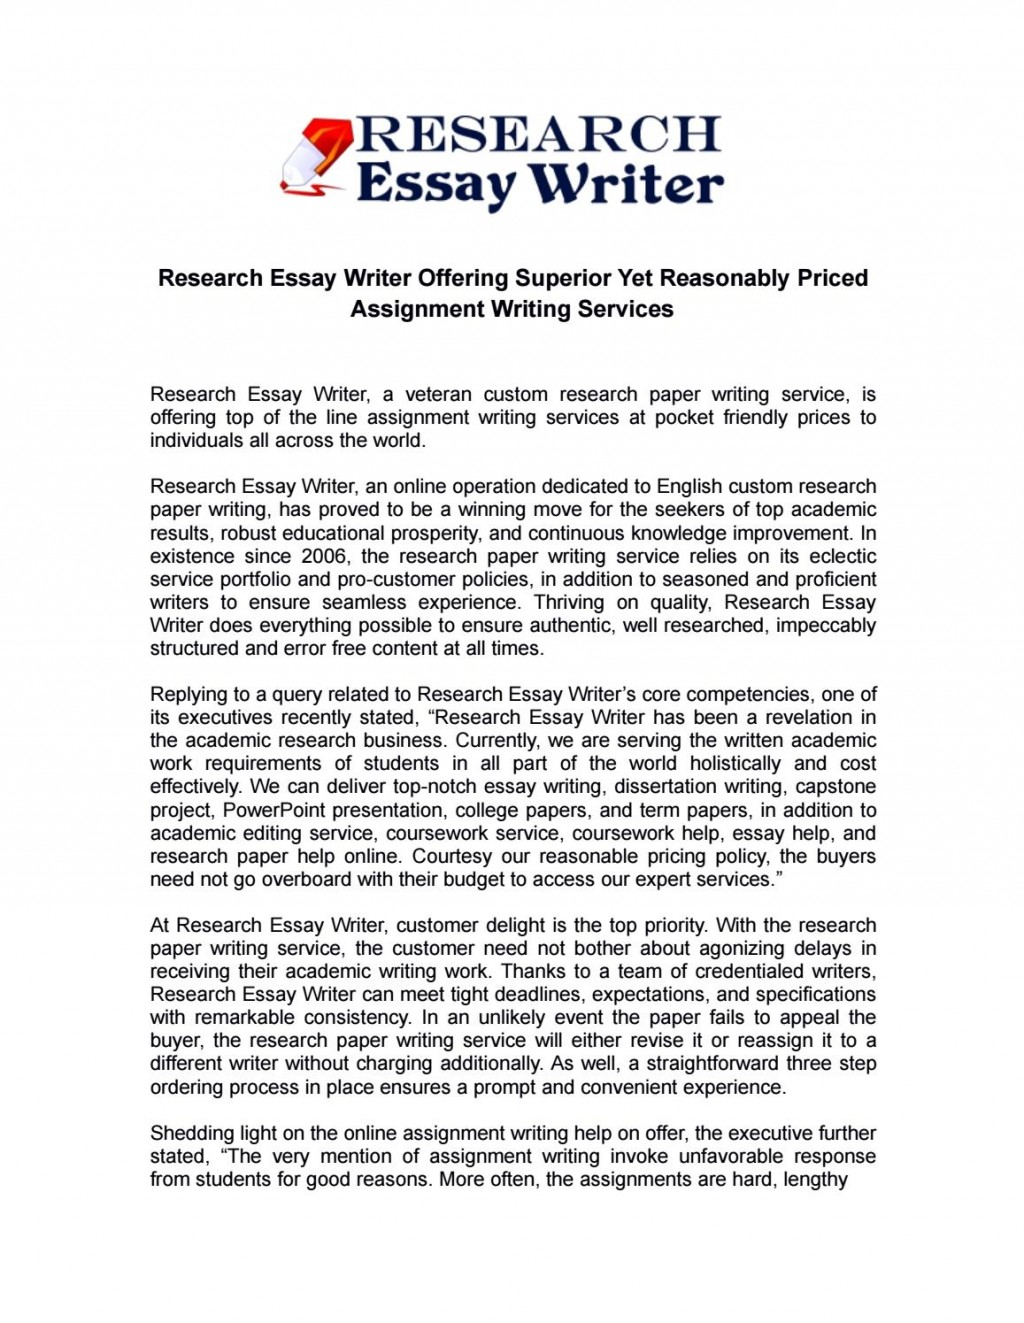 023 Page 1 Custom Research Paper Frightening Writing Services Term Service Large